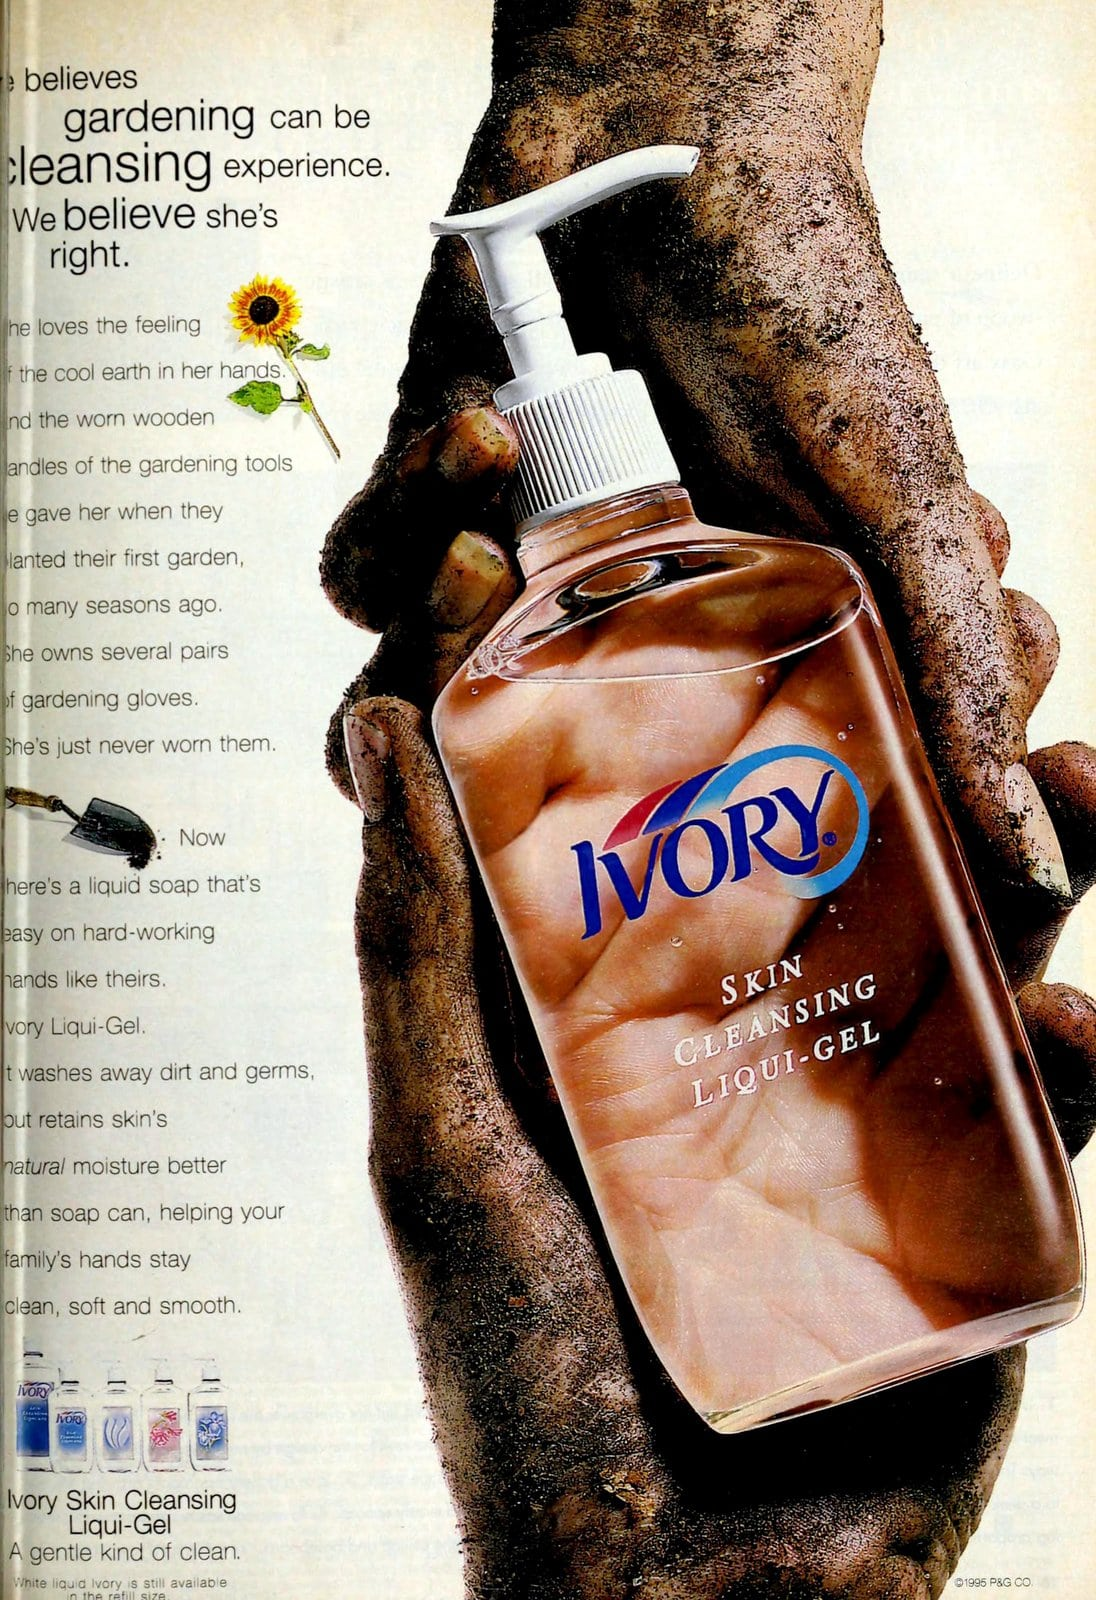 Ivory Liqui-Gel soap (1996)